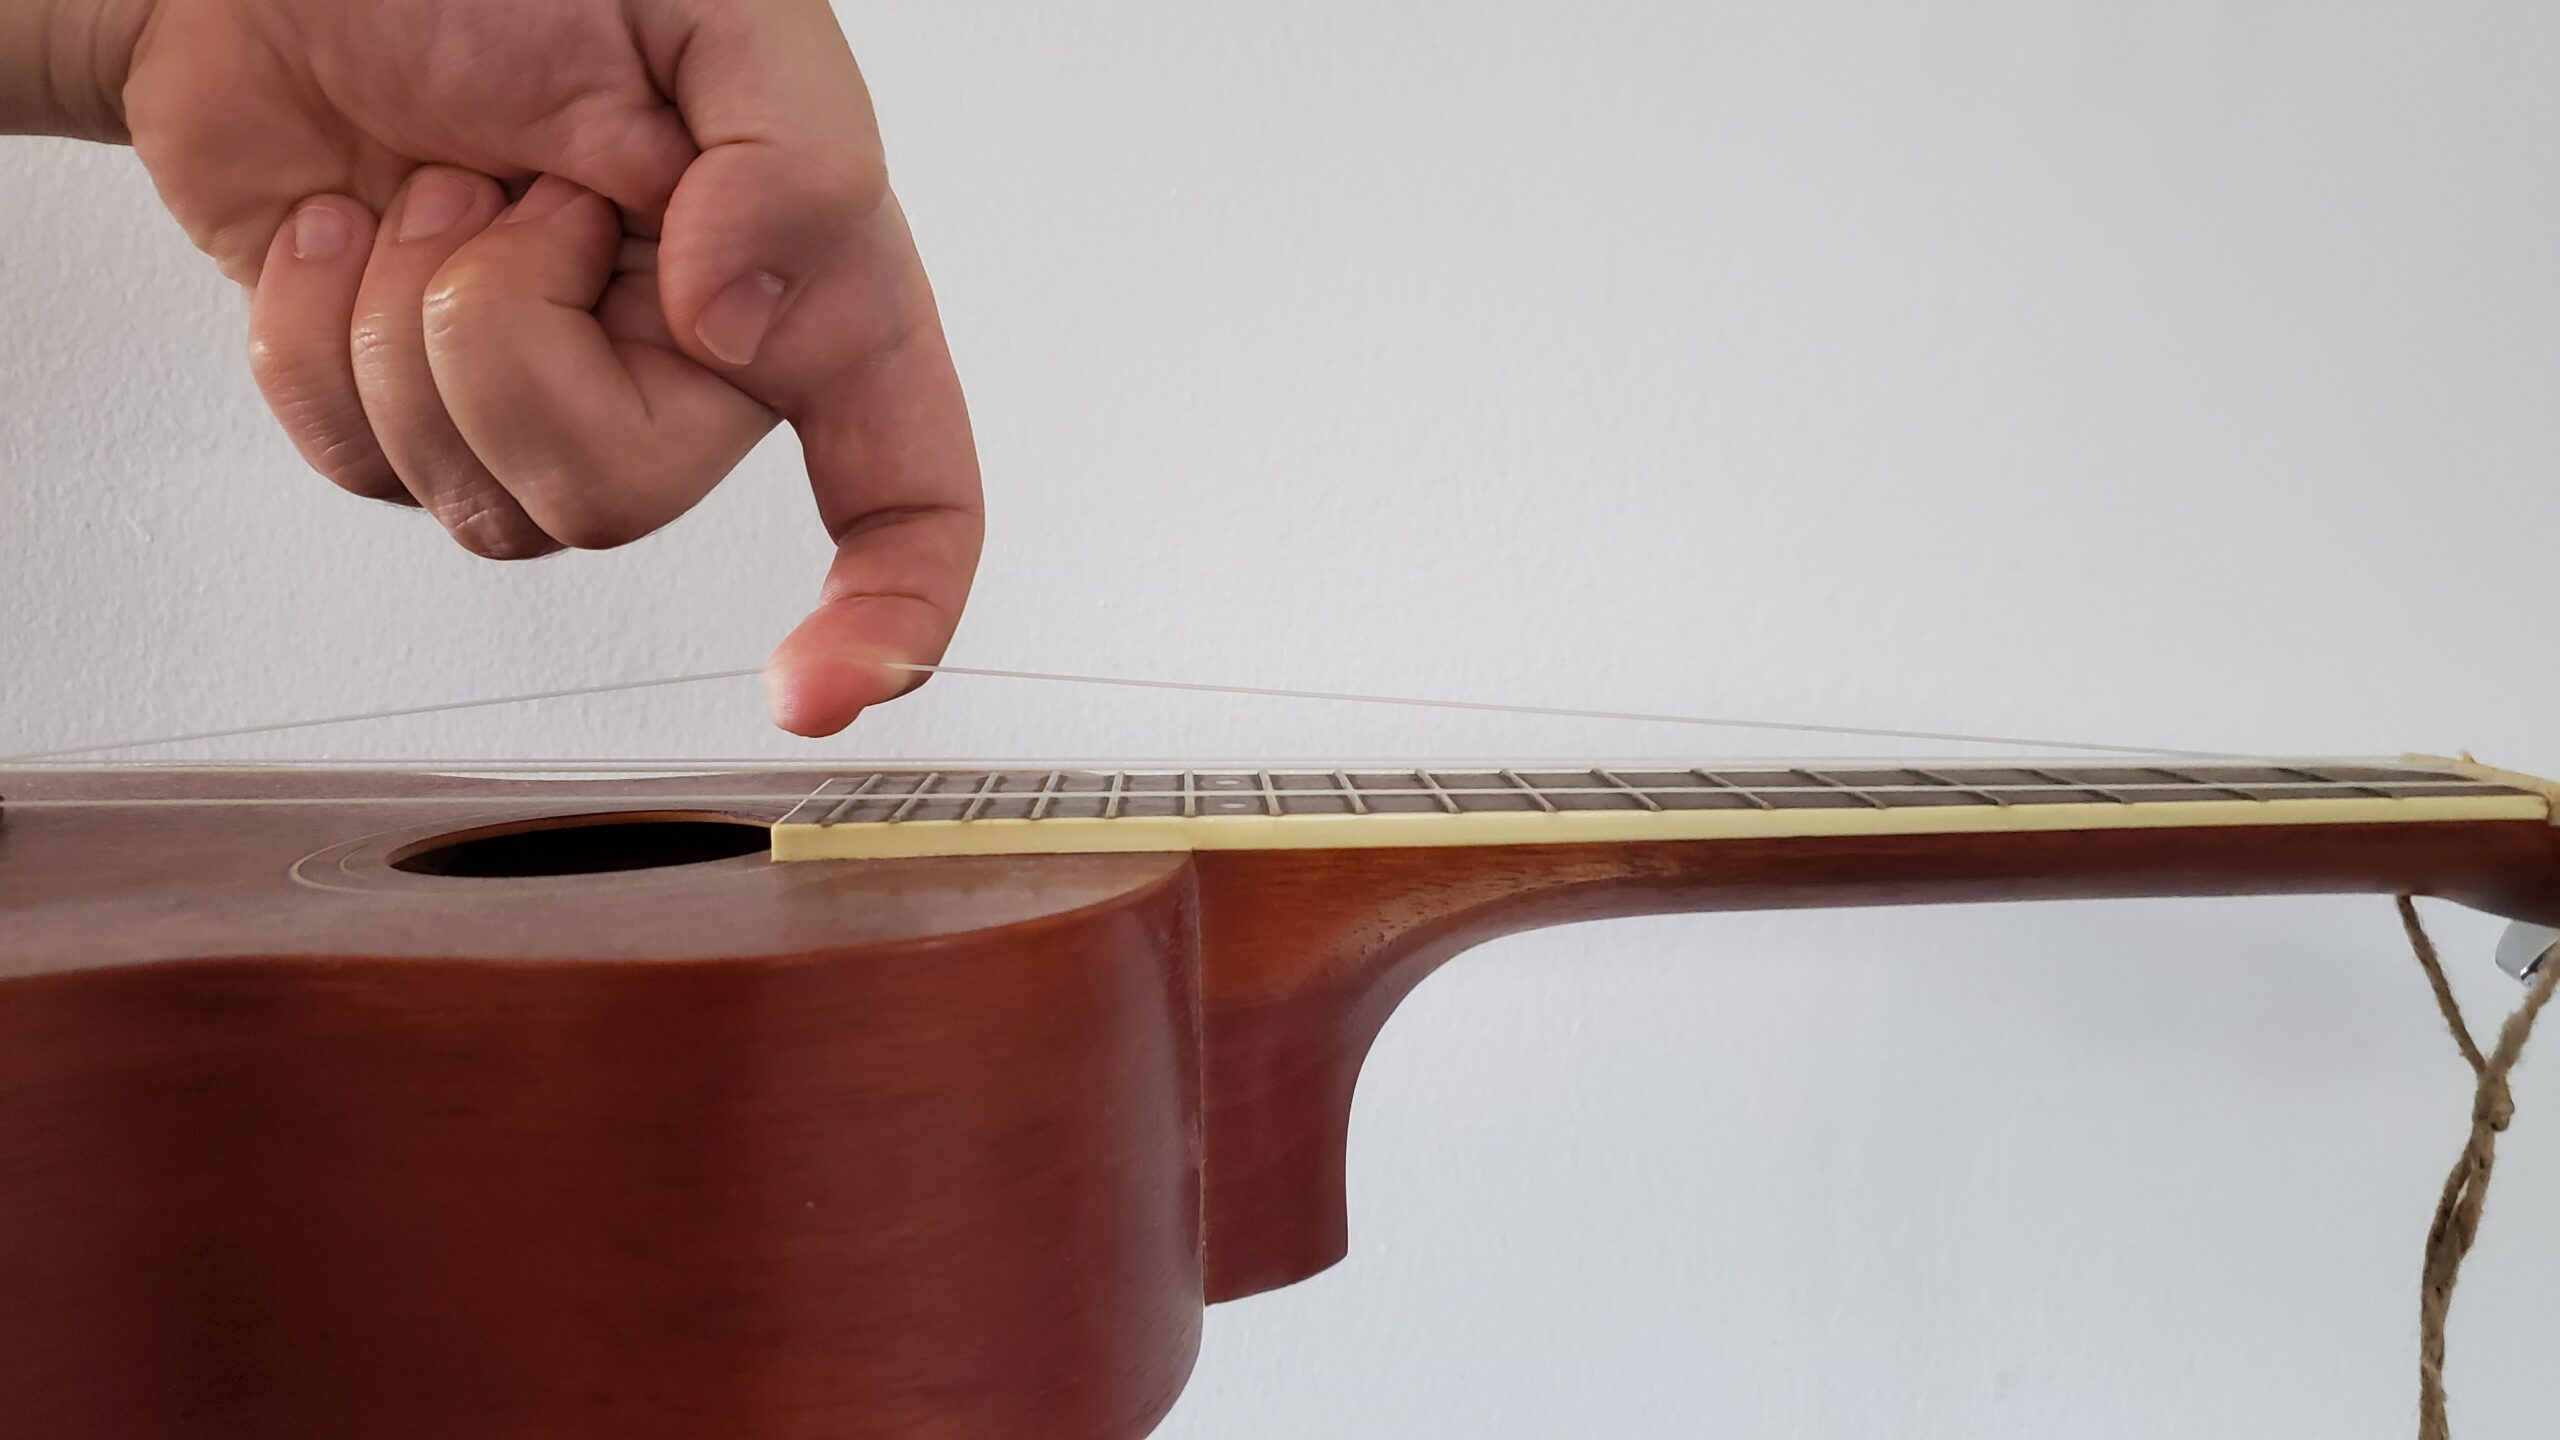 How to Stretch Nylon Ukulele Strings